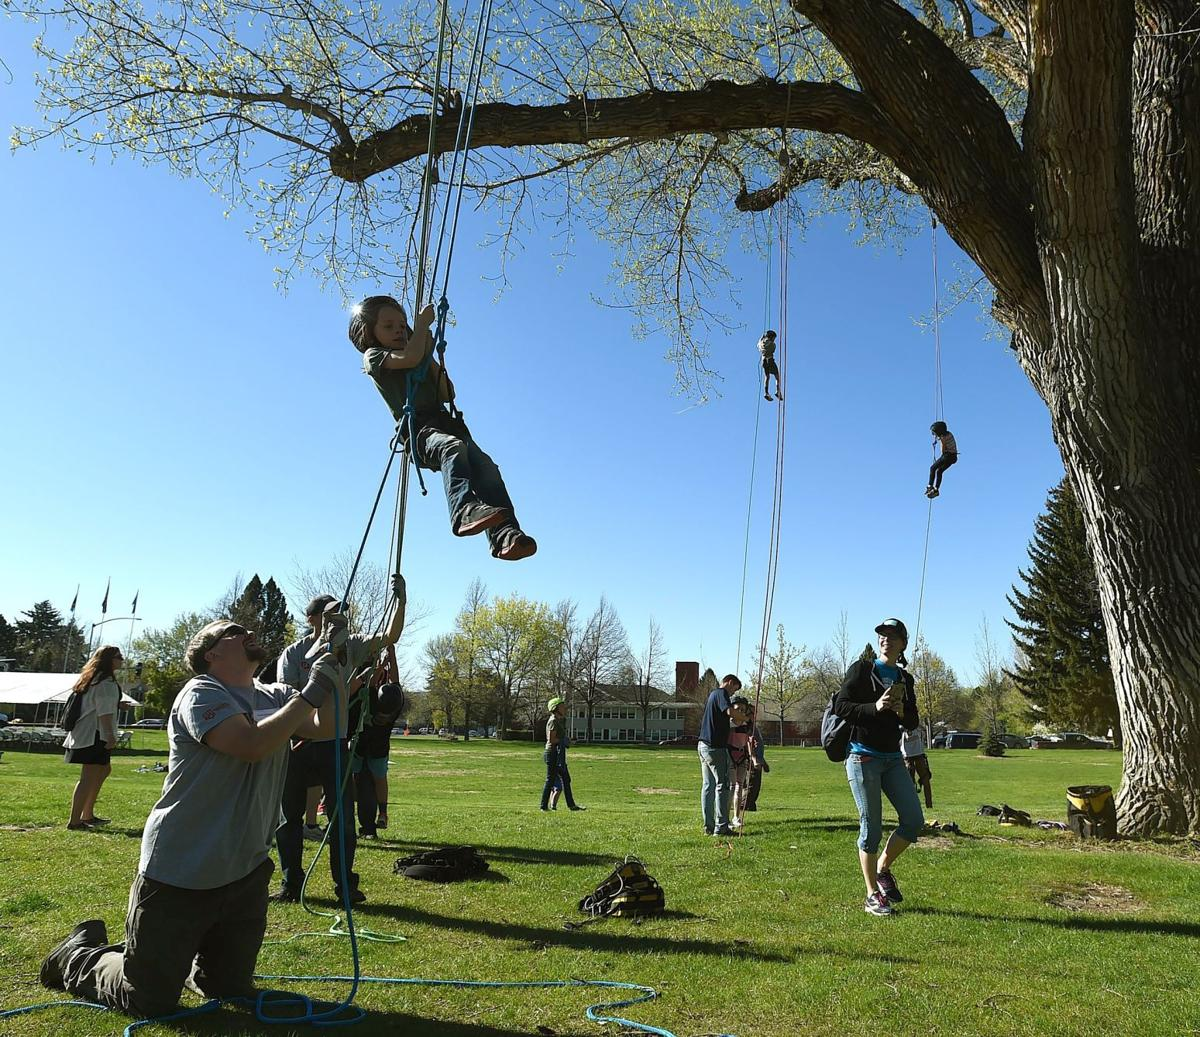 Arbor Day ropes